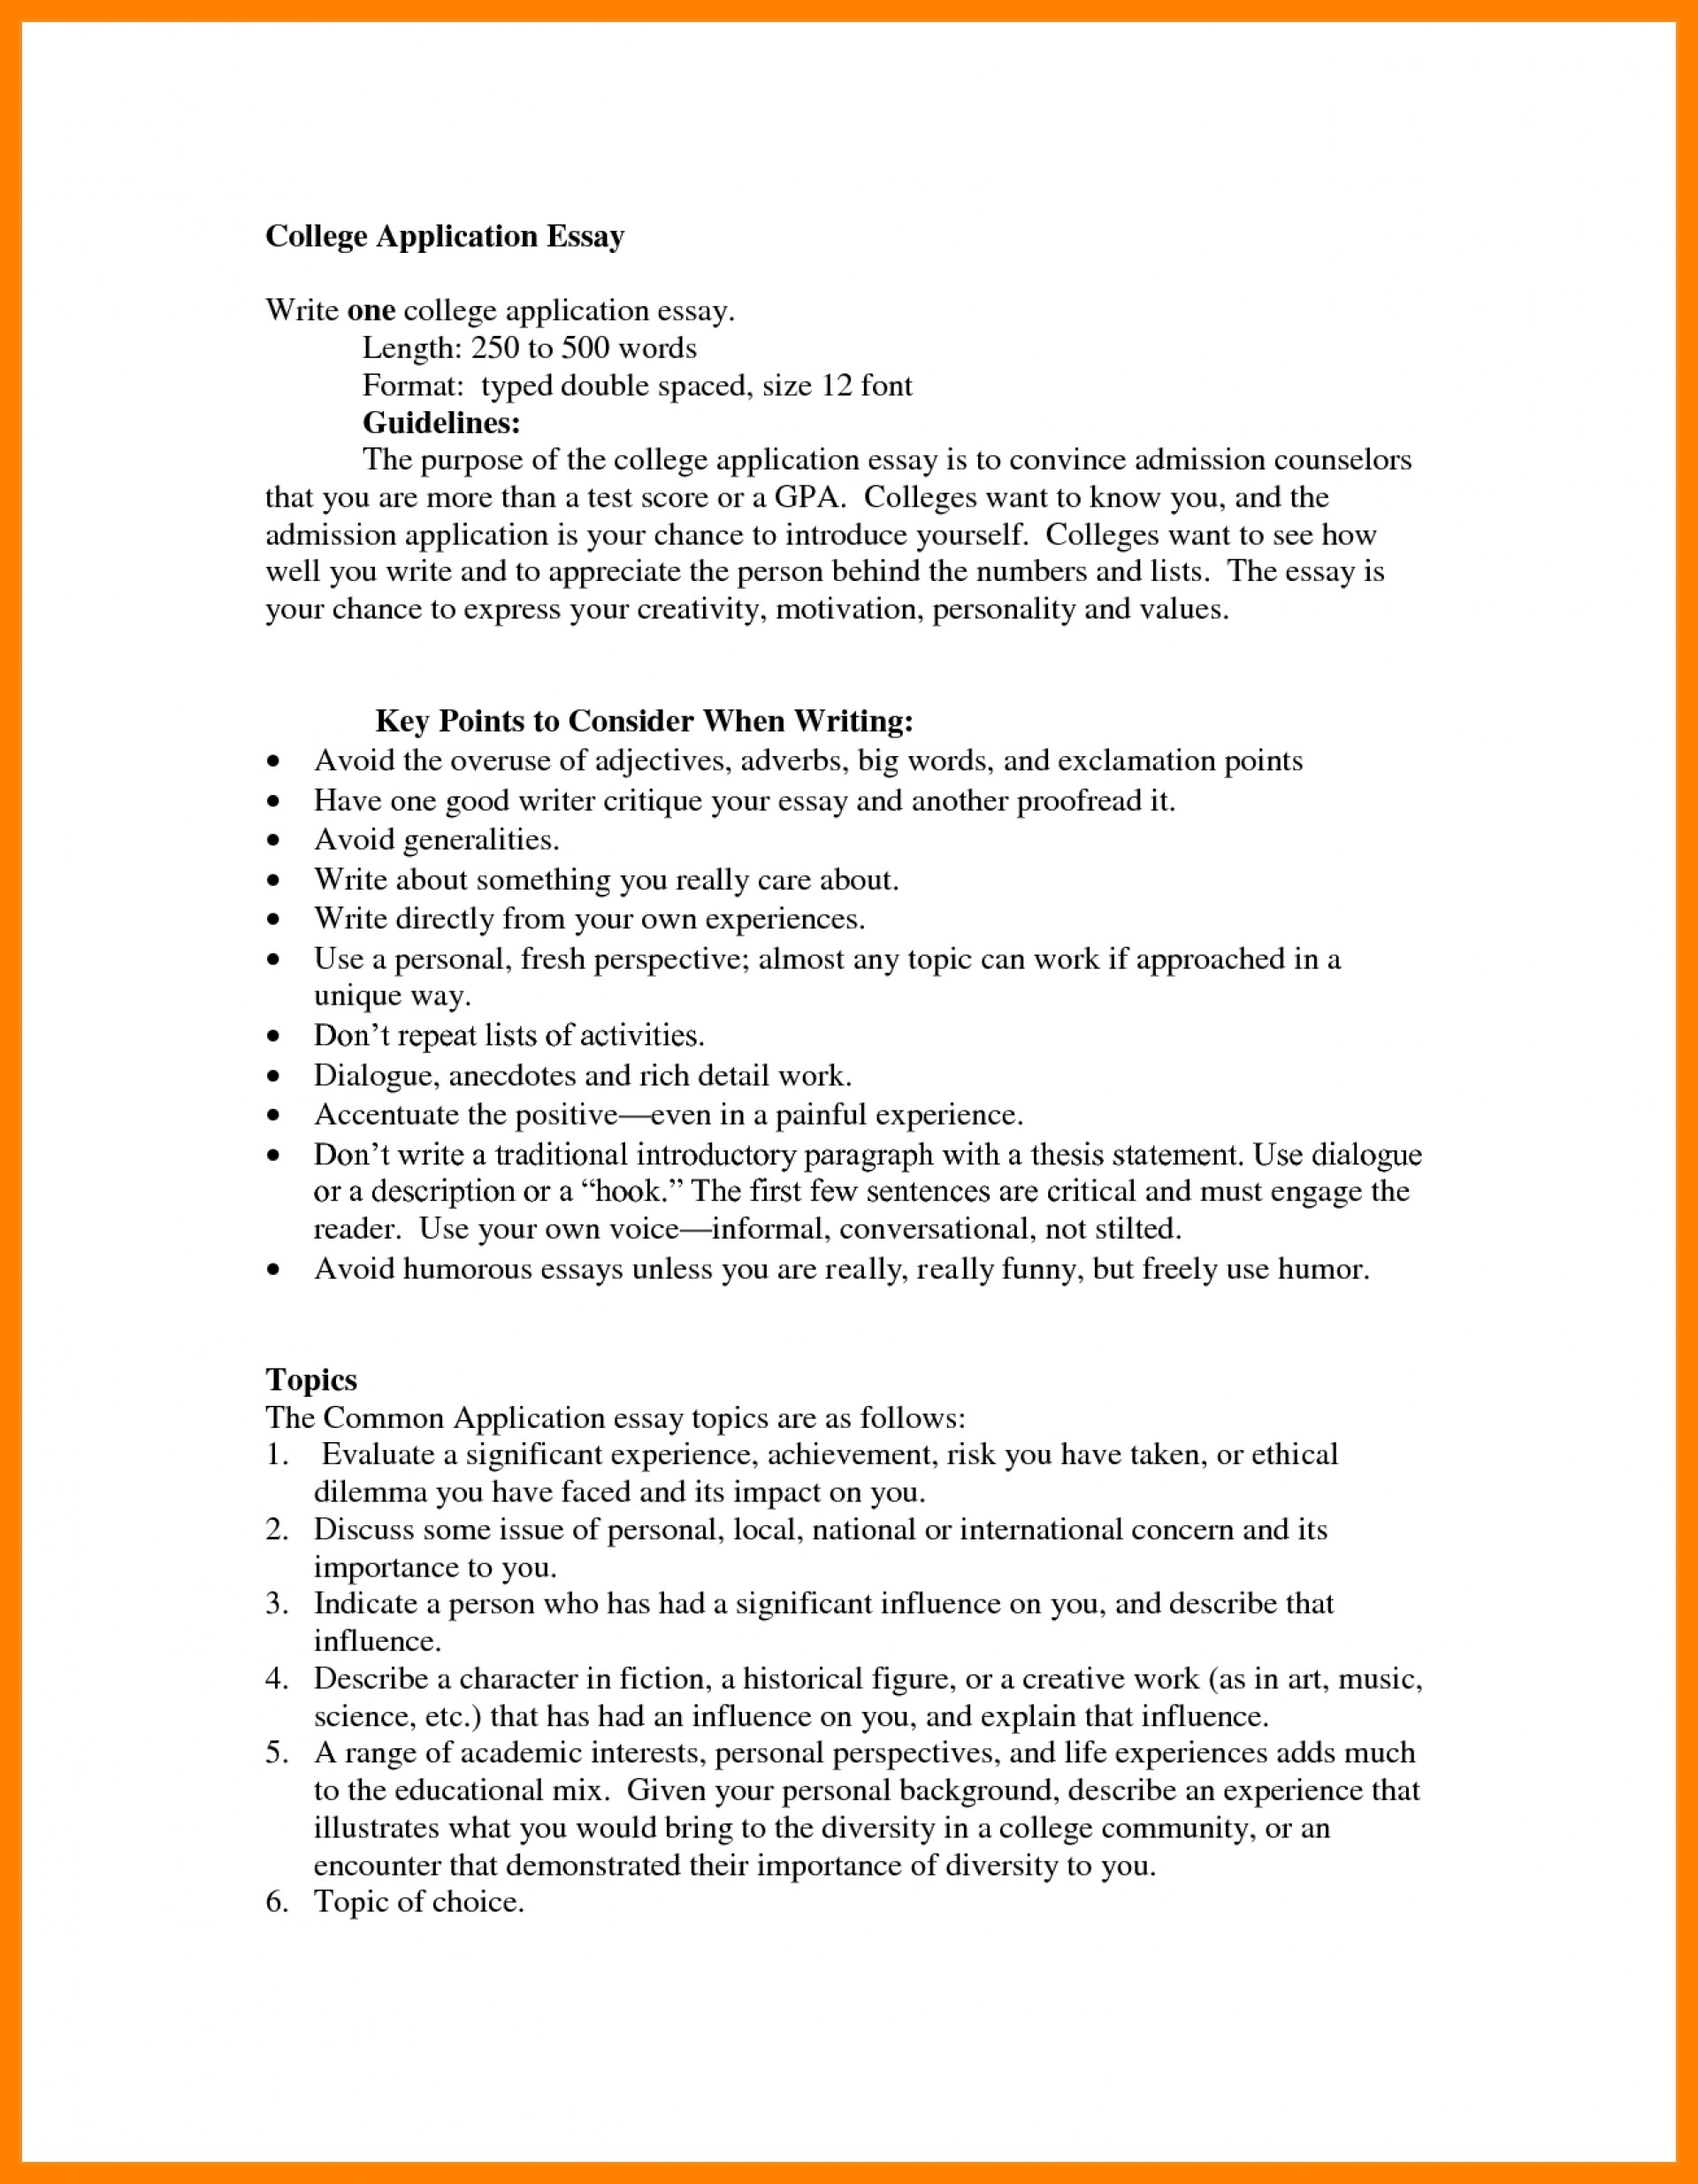 007 Essay Example Format Of College Application Template Com Admission Guidelines Sample Heading Mla How Stupendous To A Should I My Write Common App 1920